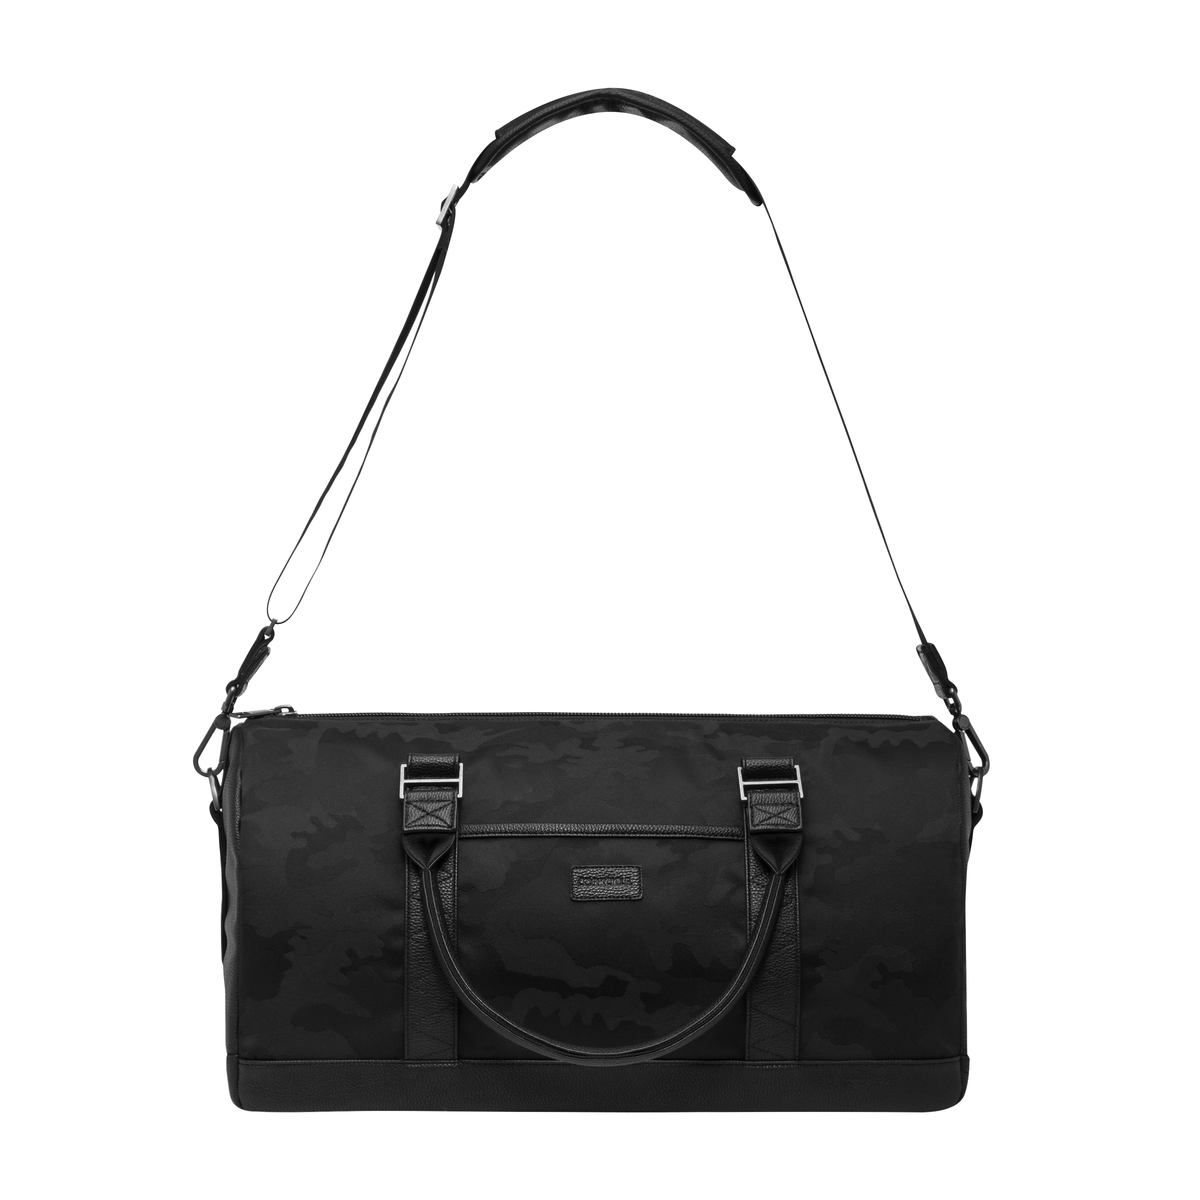 CORKCICLE - Ivanhoe Tote Bag Cooler